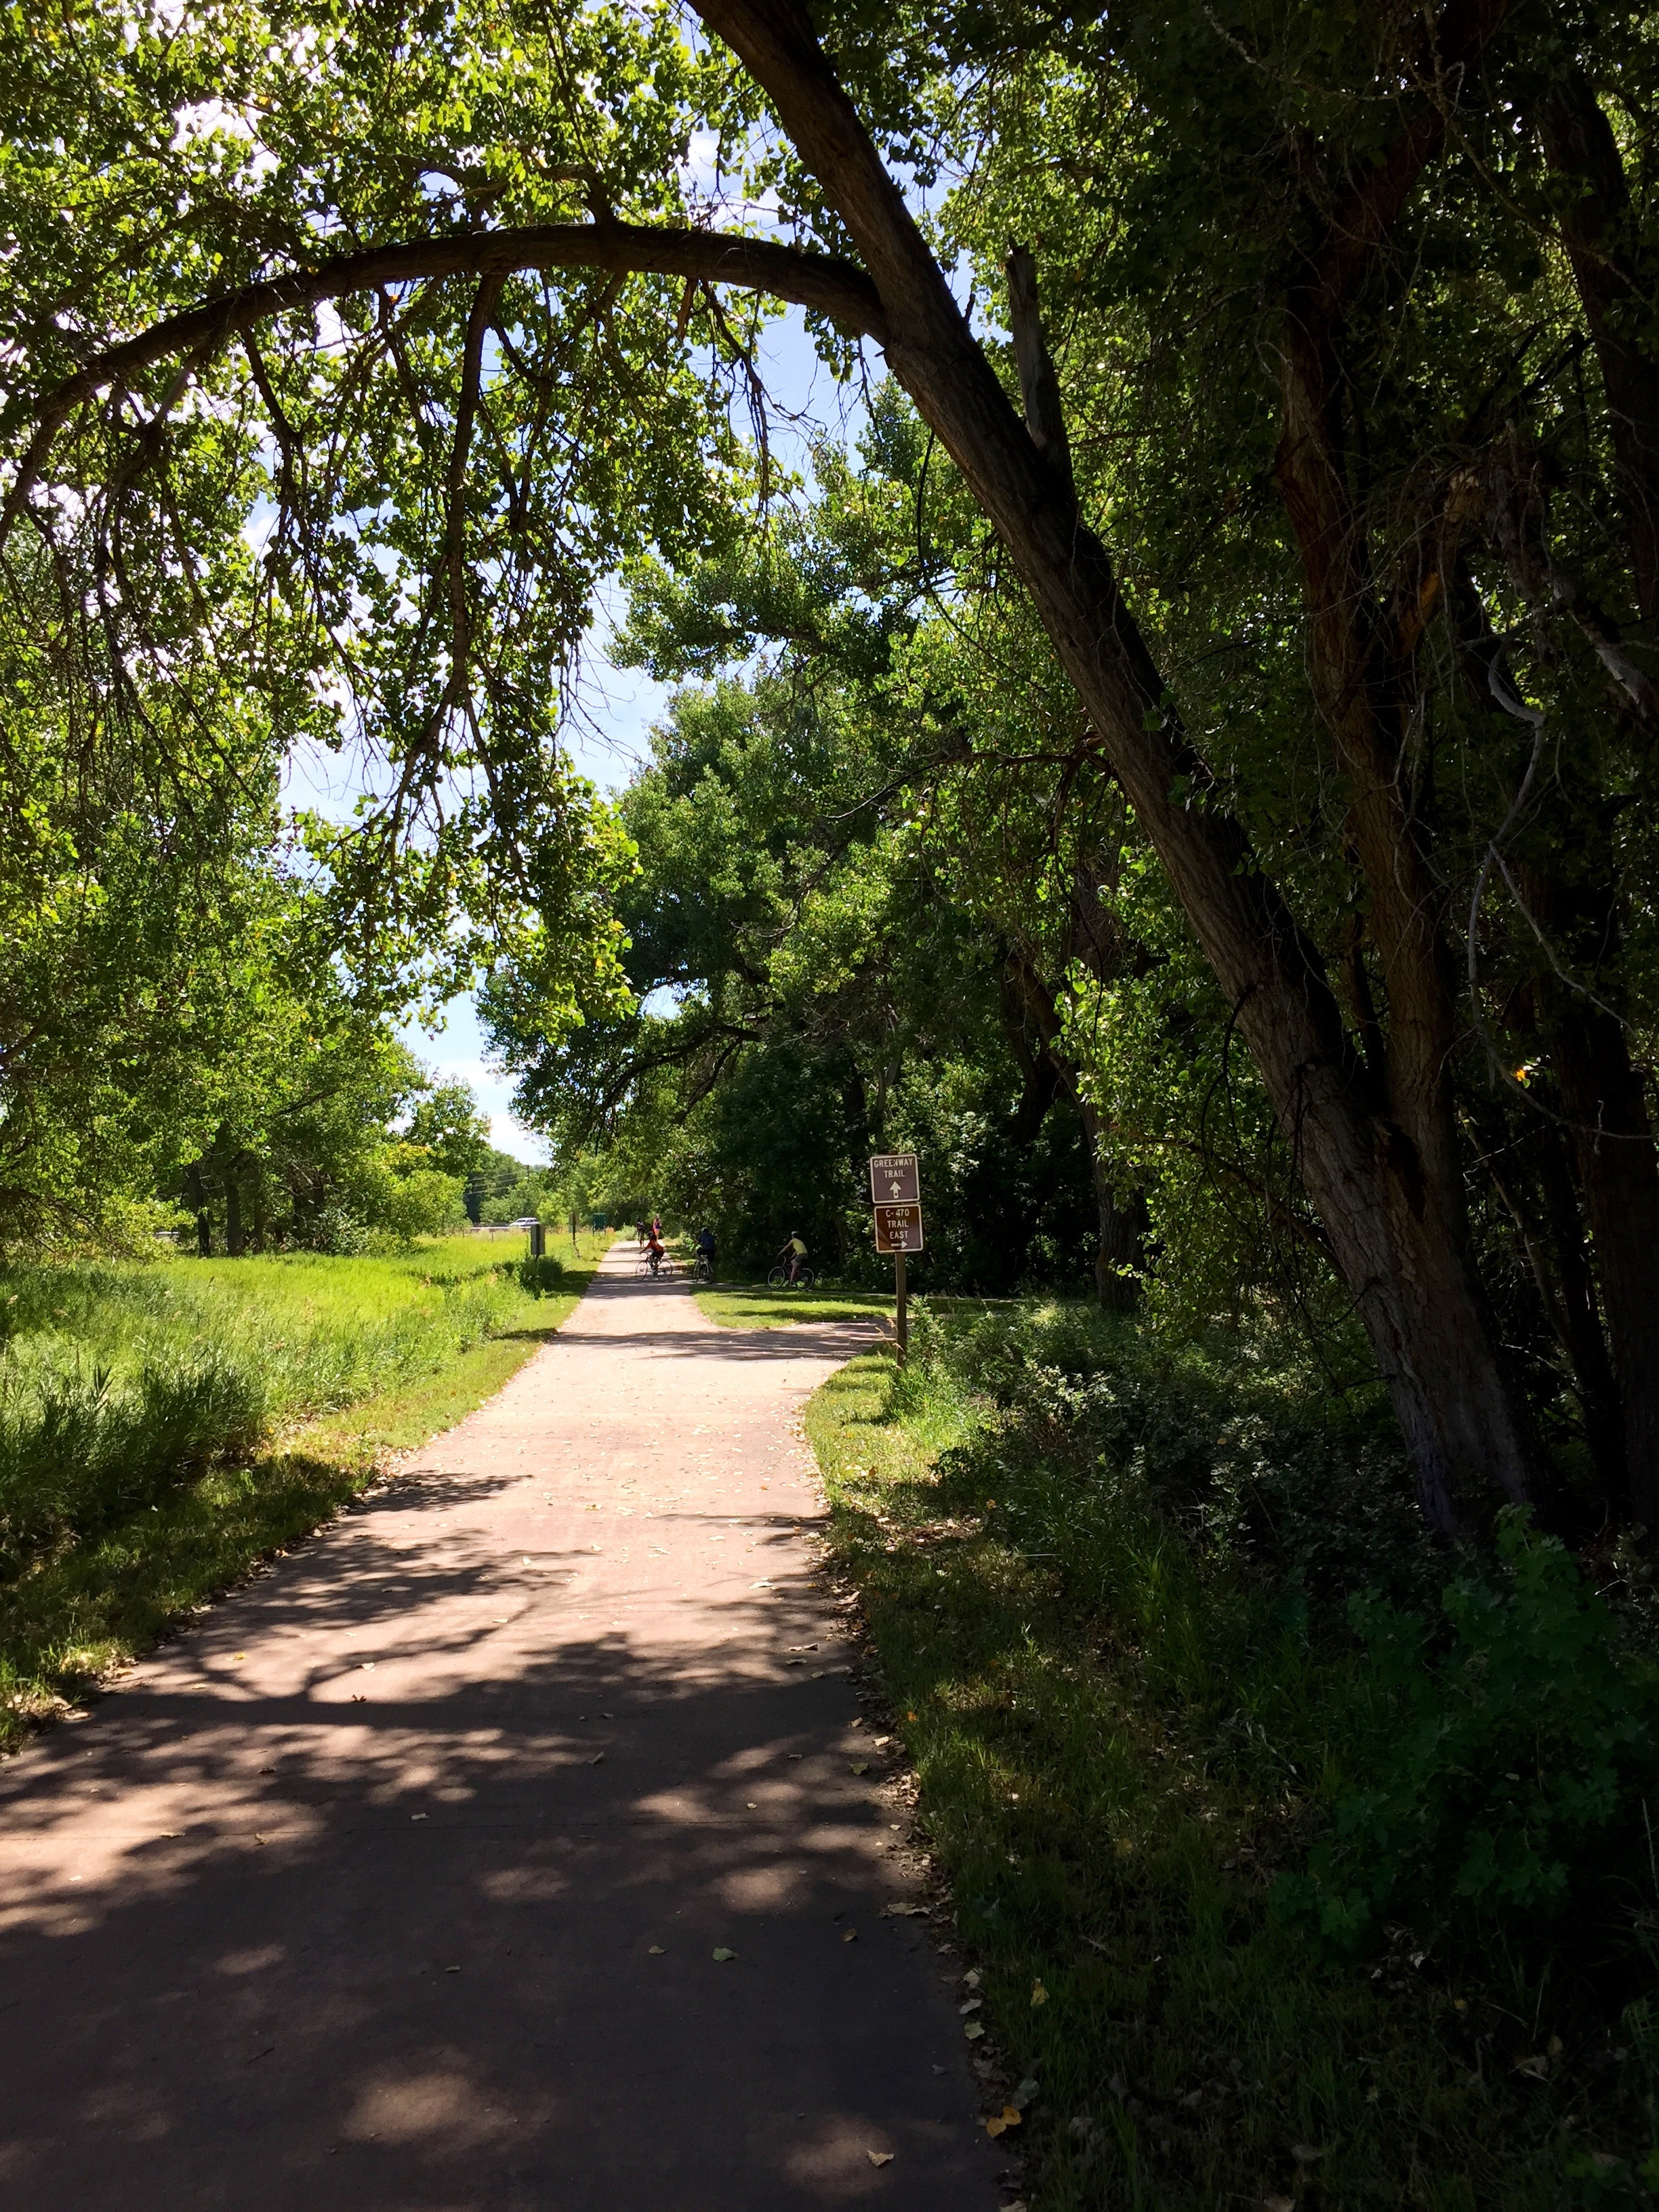 The trail picks up some shade as it switches from the C-470 Trail to the Mary Carter Greenway